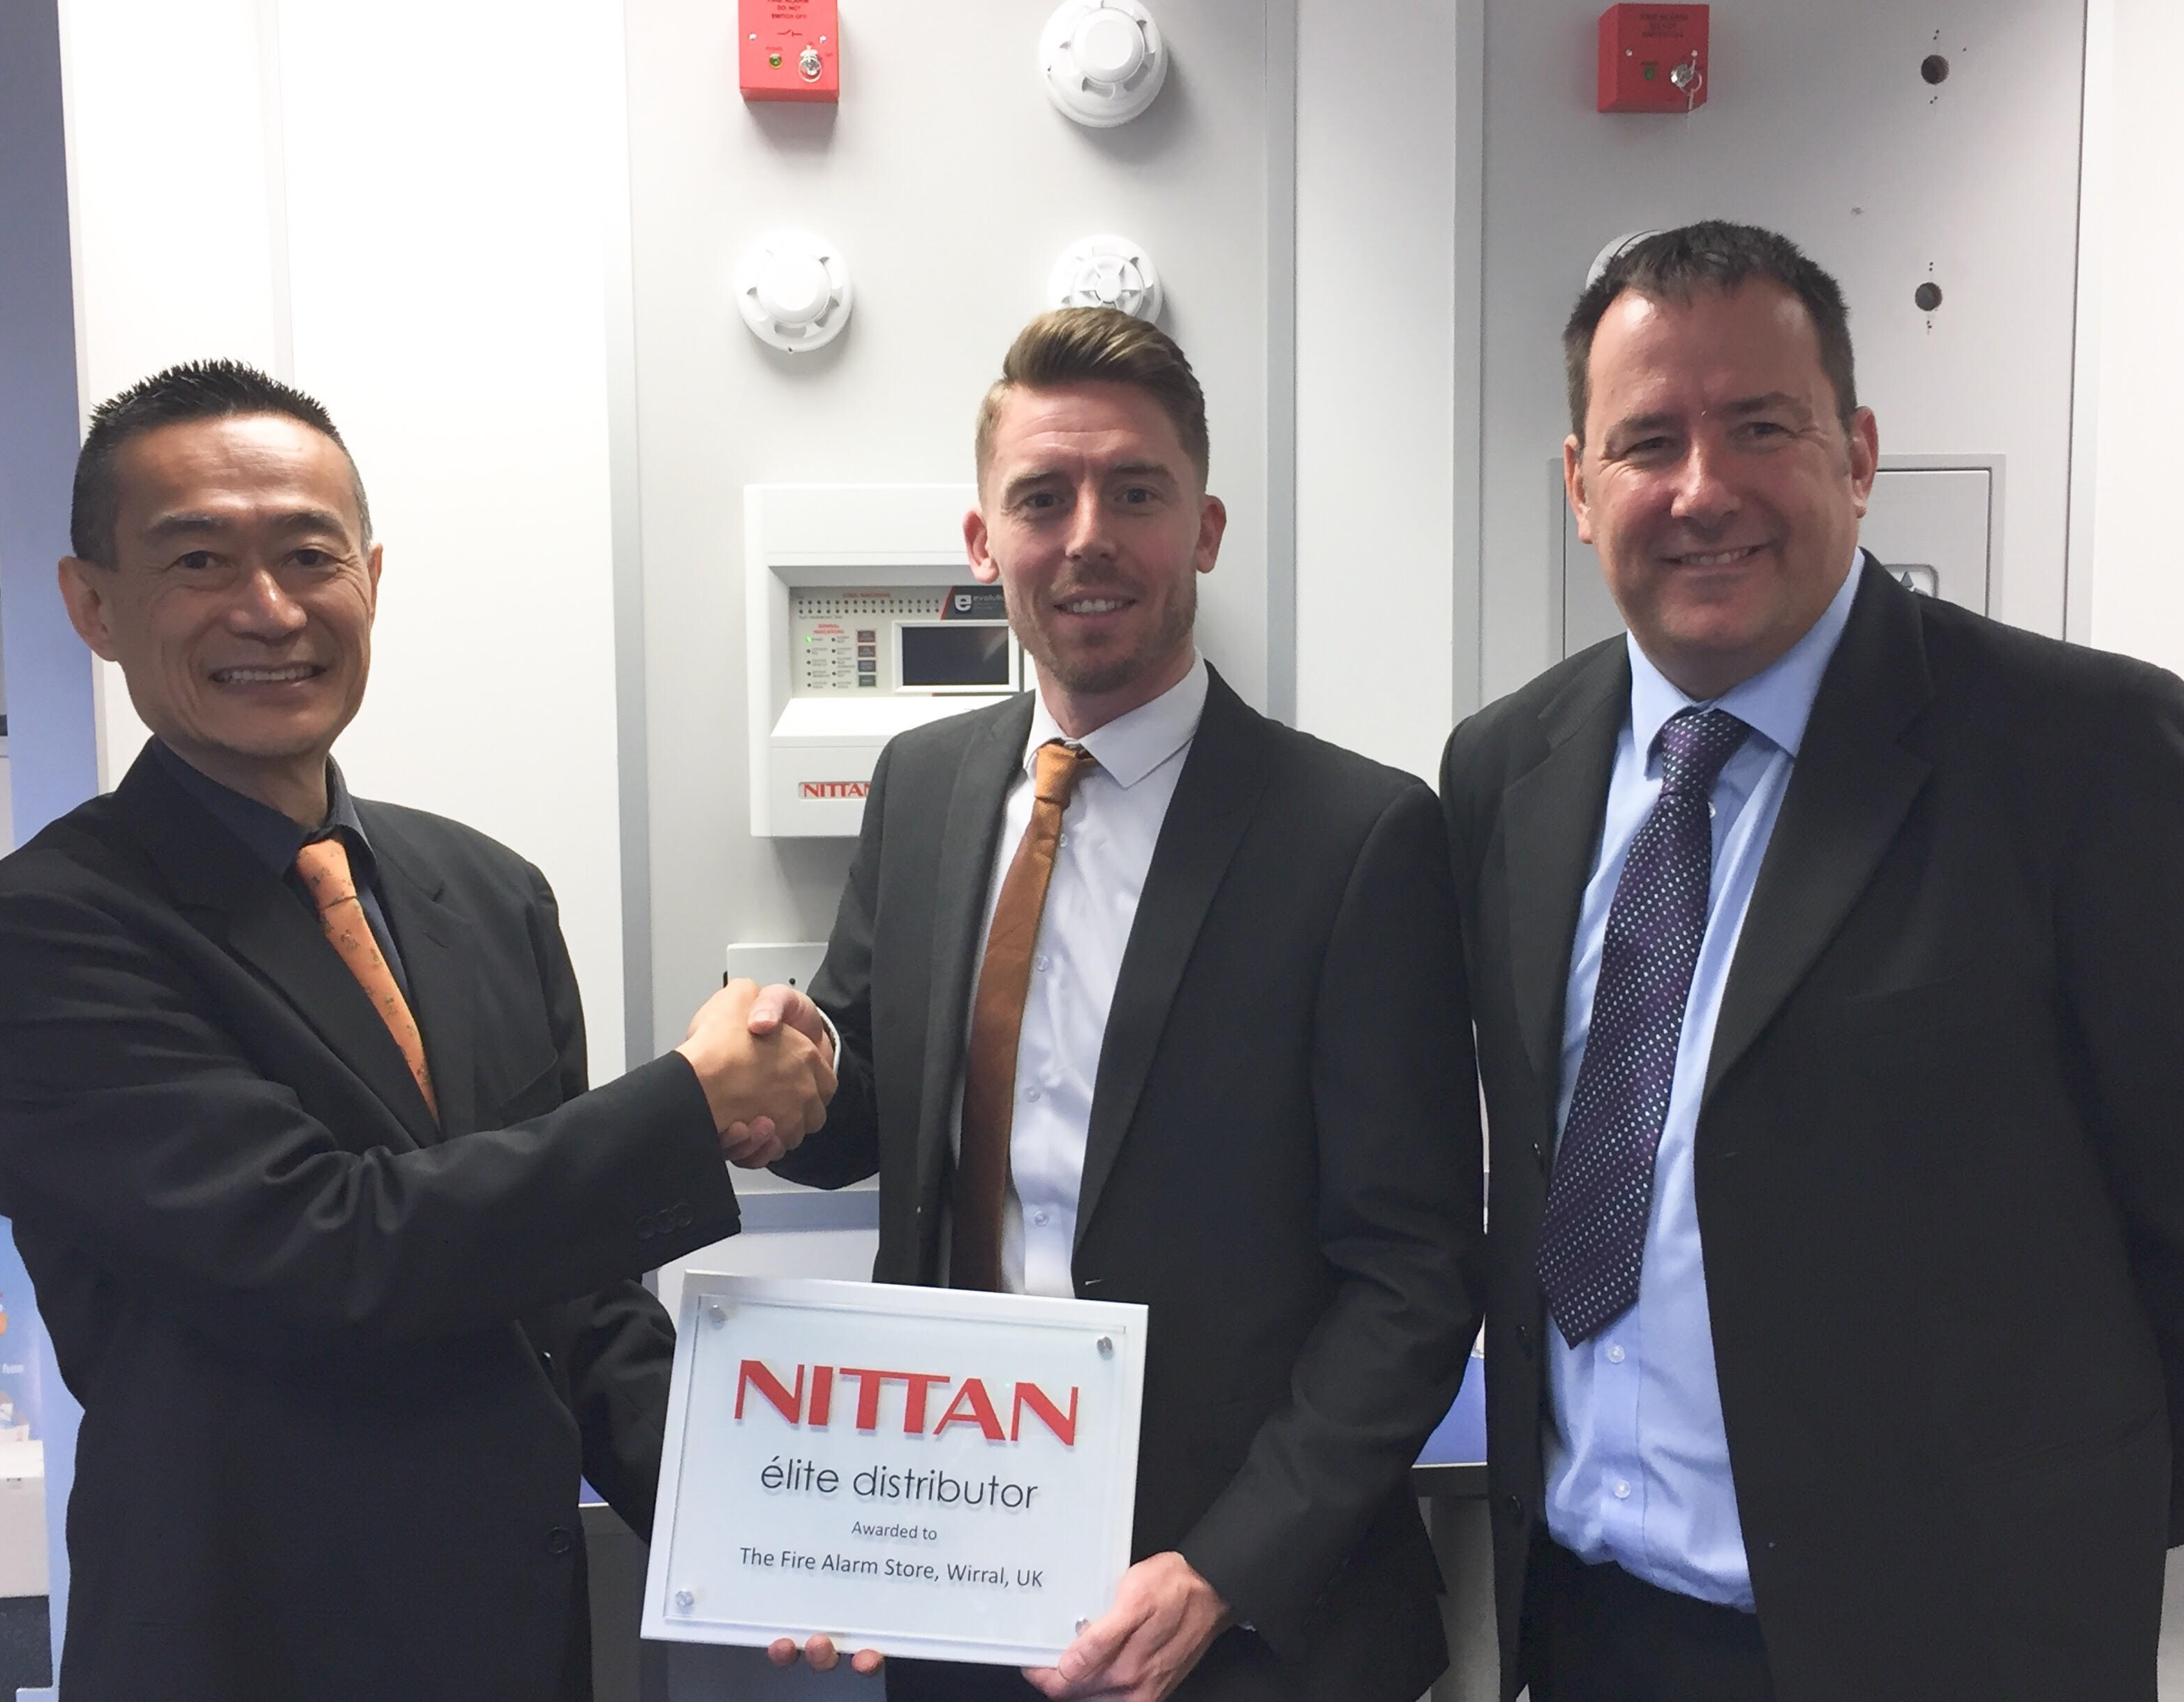 Nittan MD, Mr Kadokura presenting the plaque to Alan Fowlie of the Fire Alarm Store, with Nittan RSM, Barry Simpson, on the Right hand side